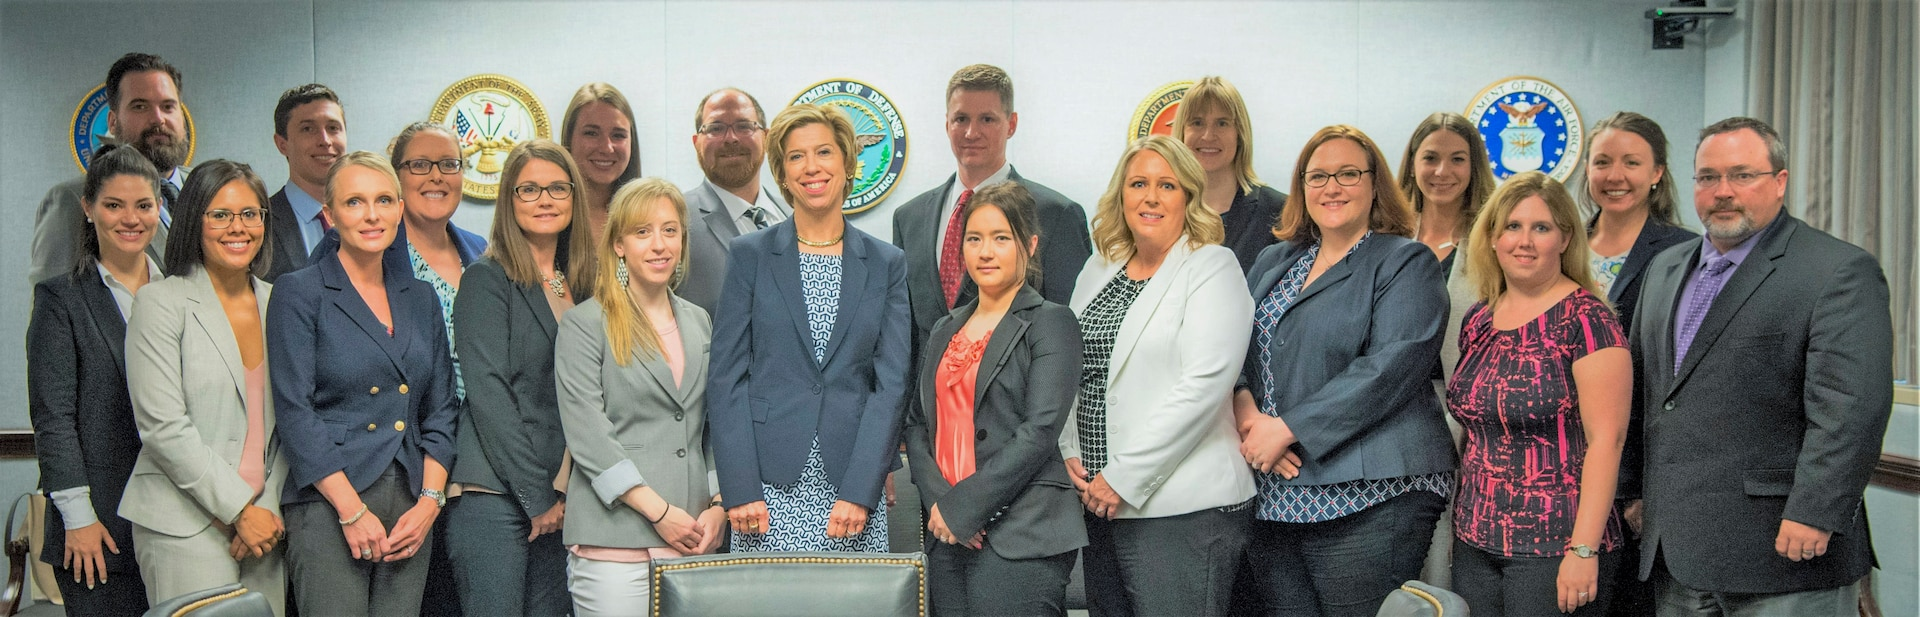 Twenty people in business attire pose for a photo.